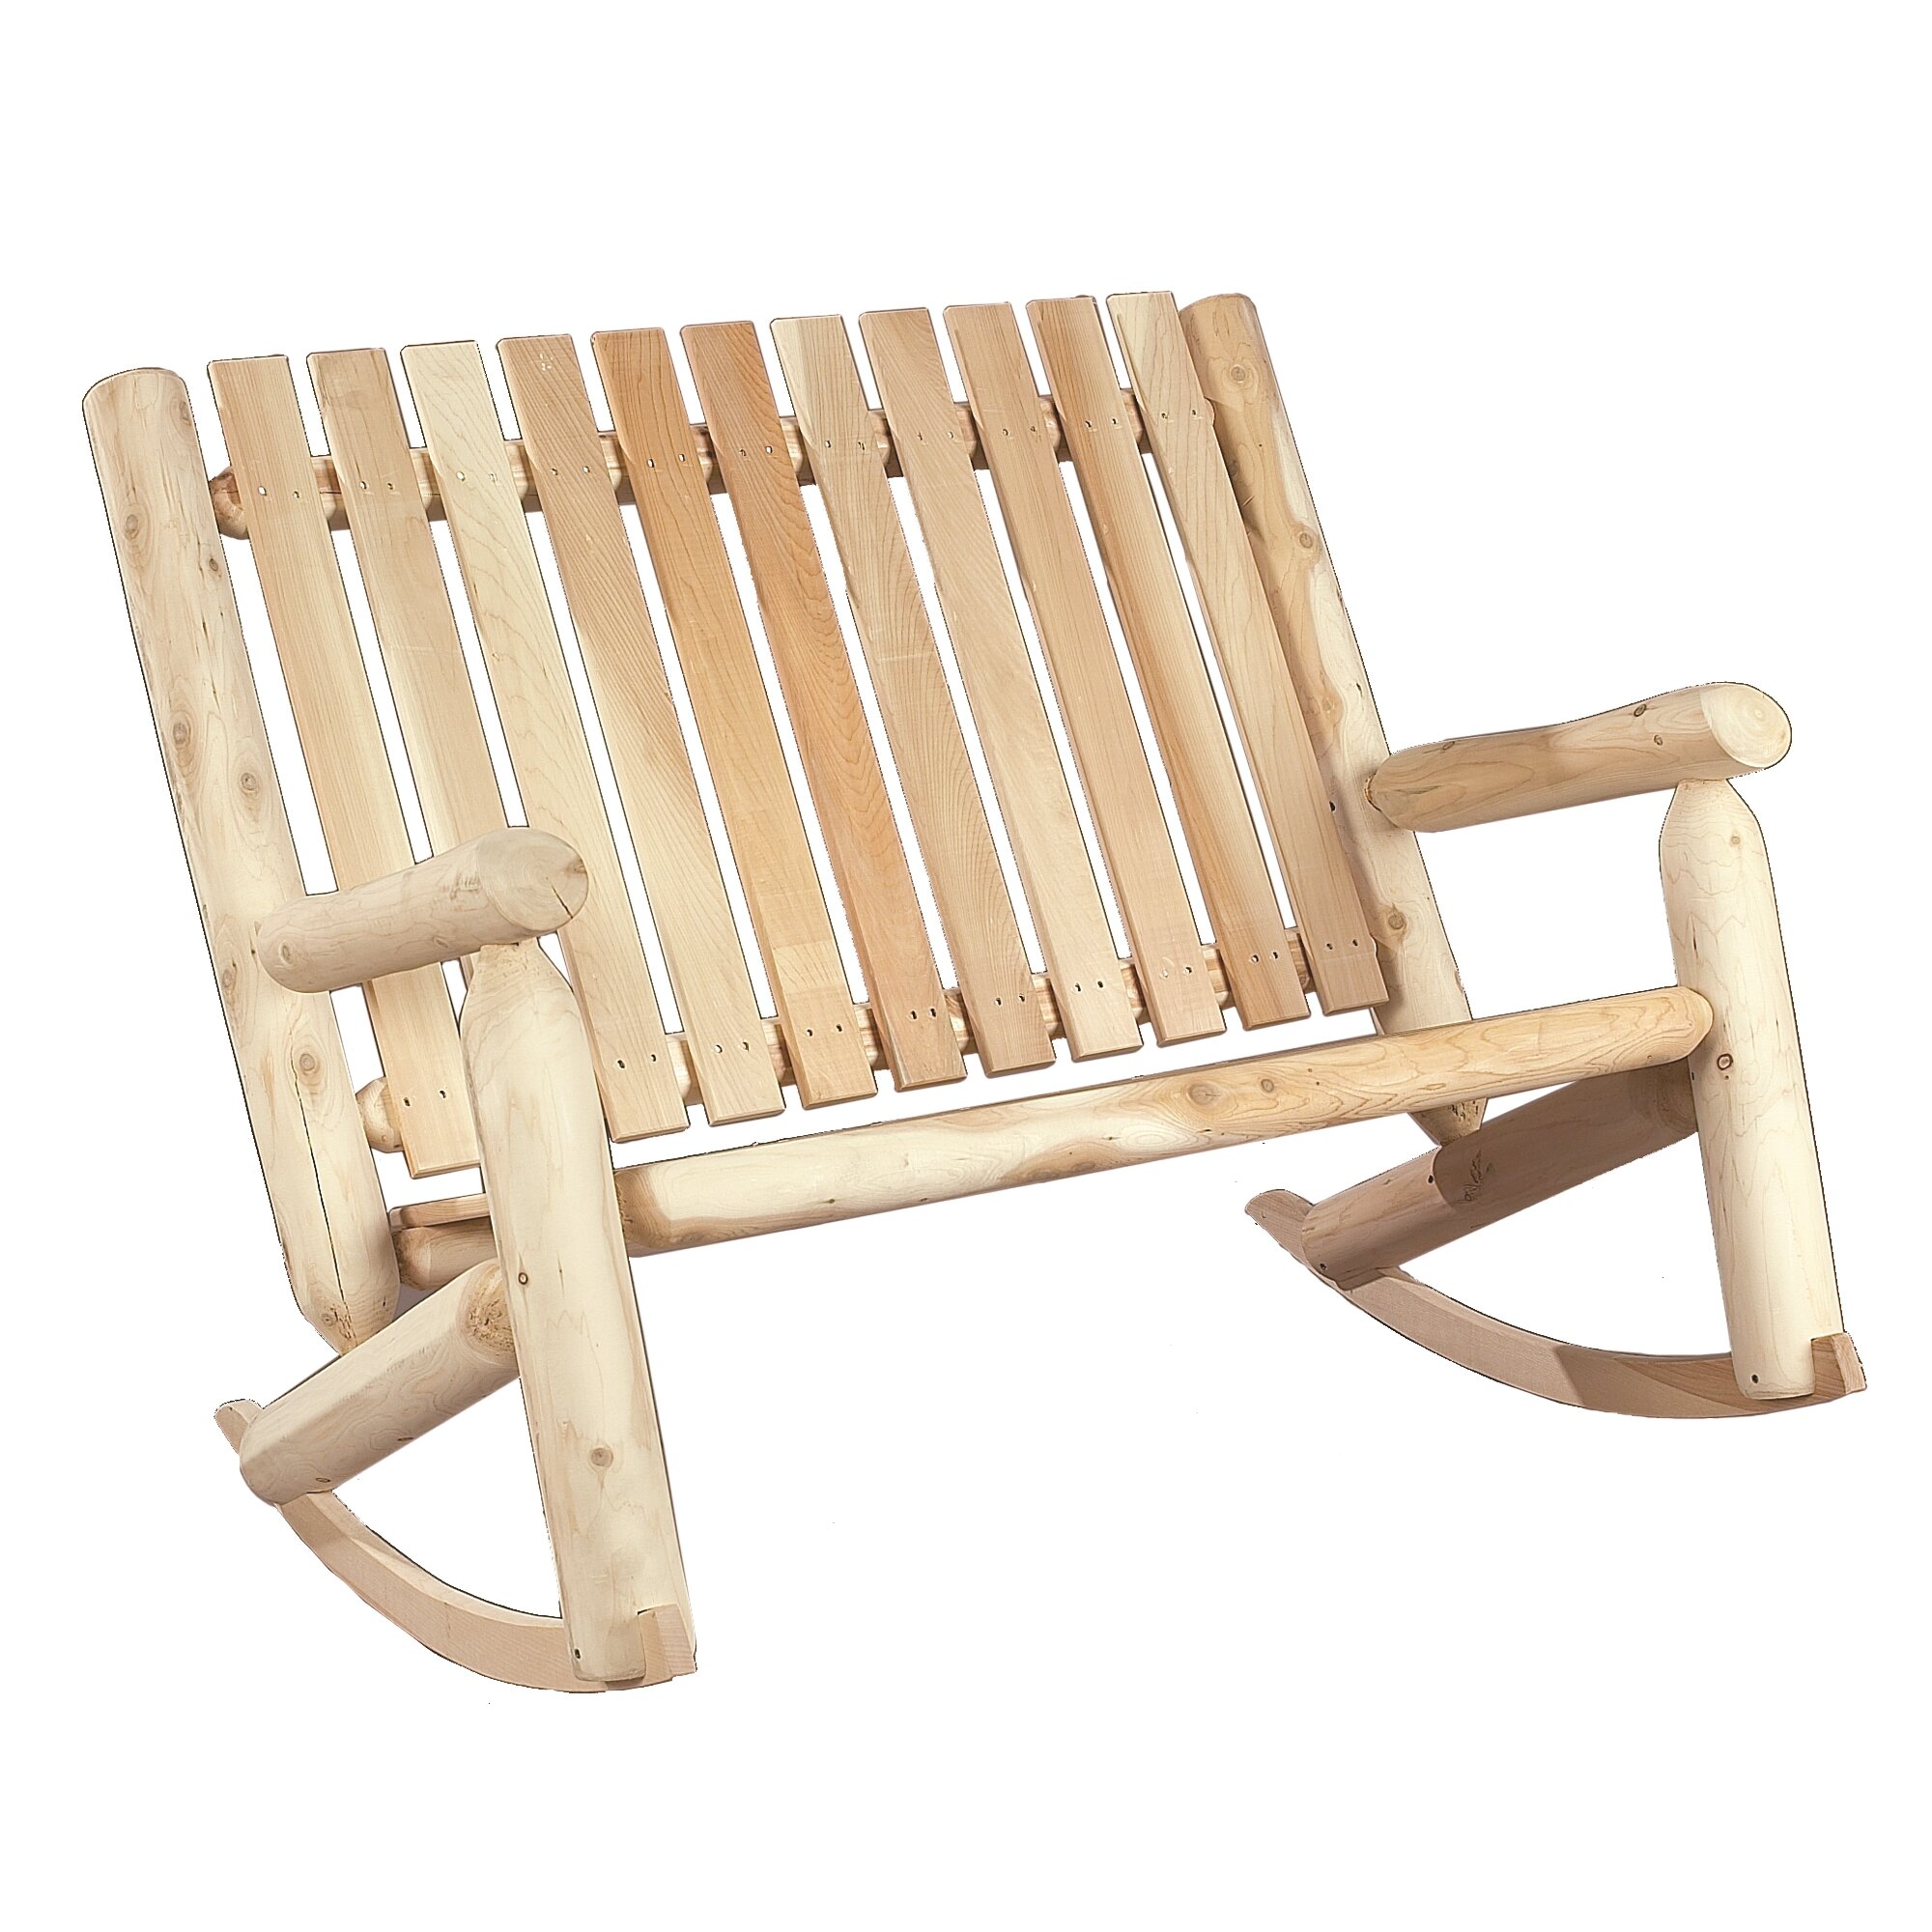 Outdoor Patio Furniture ... Wood Patio Rocking Chairs Rustic Cedar SKU ...